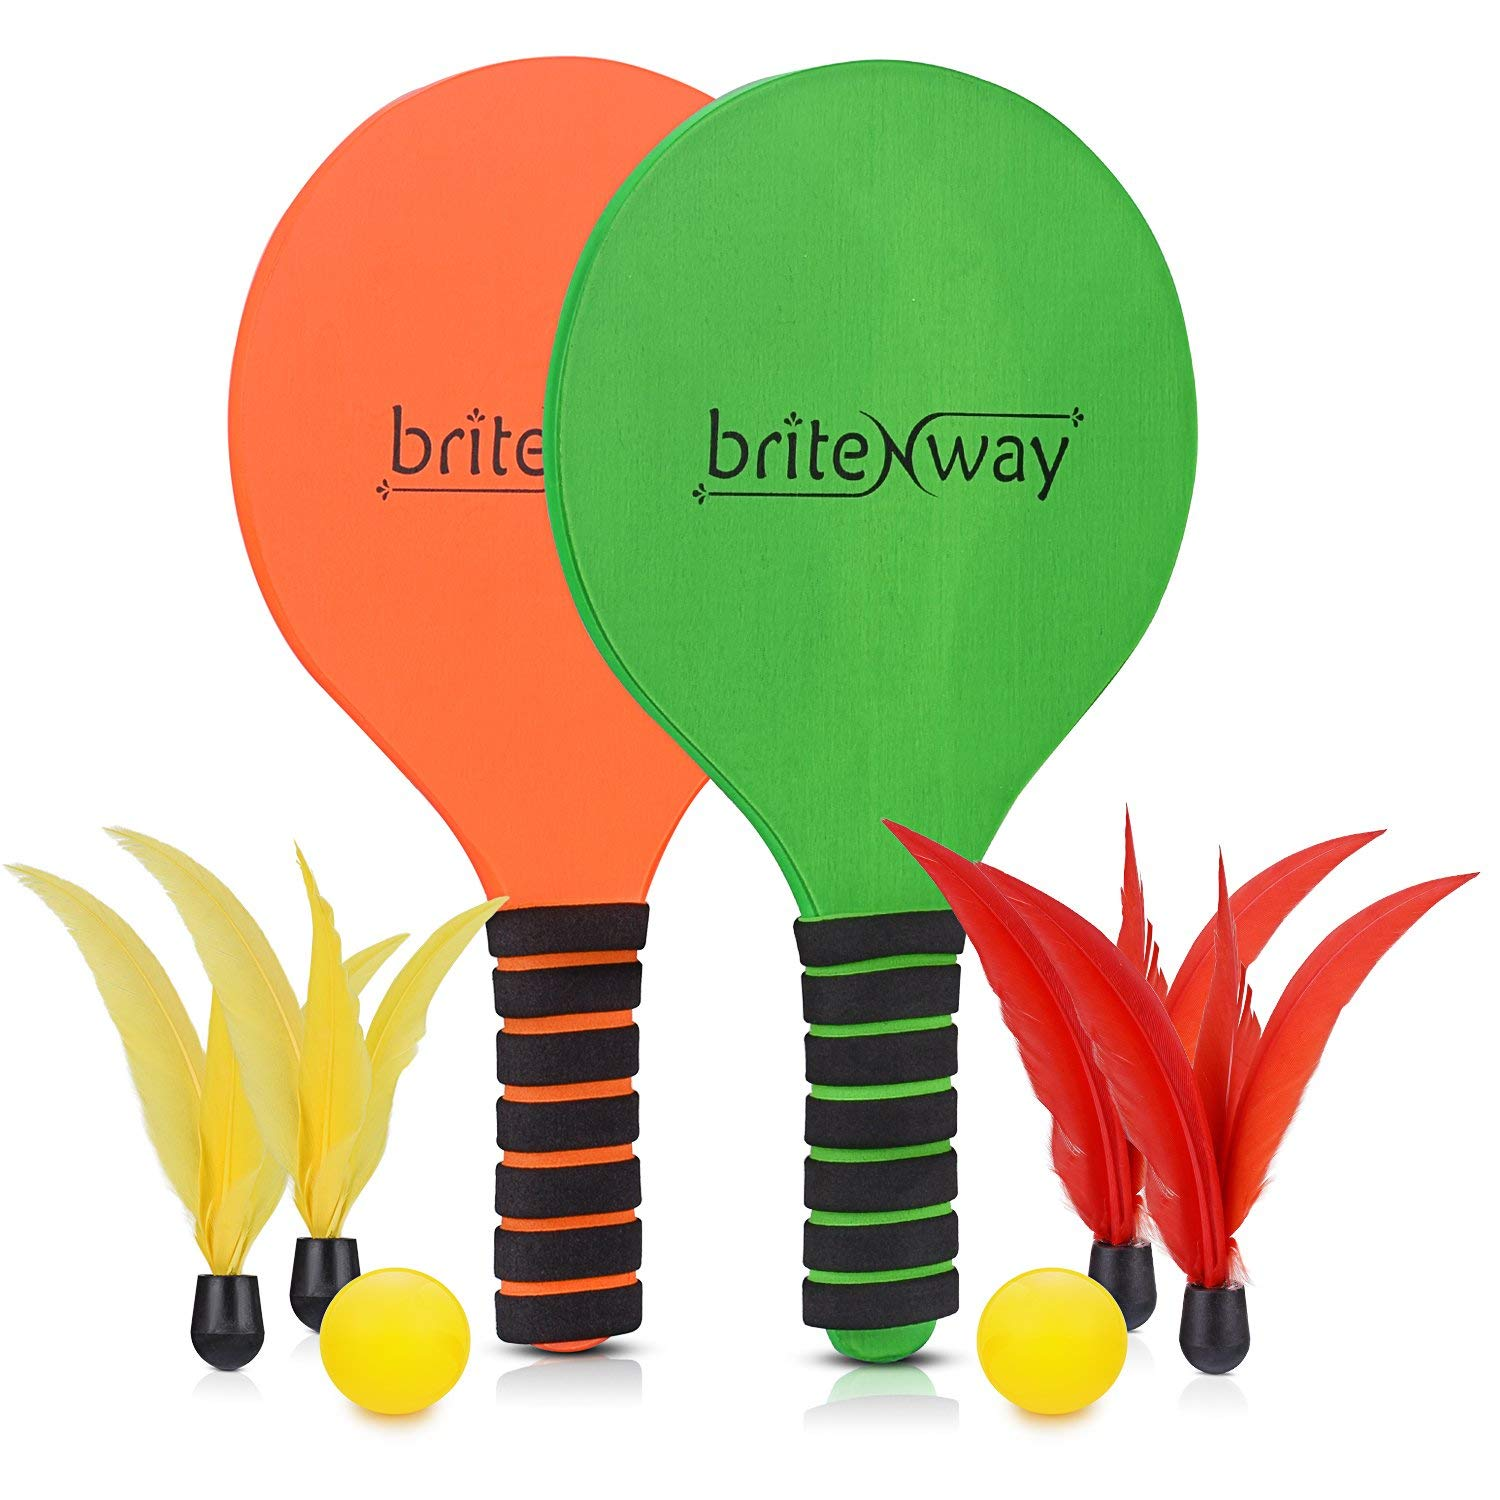 briteNway Paddle Ball Game Bundle With 2 Wooden Racket Paddles, 2 Balls, 4 Shuttlecocks & 1 Carrying Bag – Comfy Grip, Durable Craftsmanship – For Indoors & Outdoors, Beach, Backyard, Garden & More